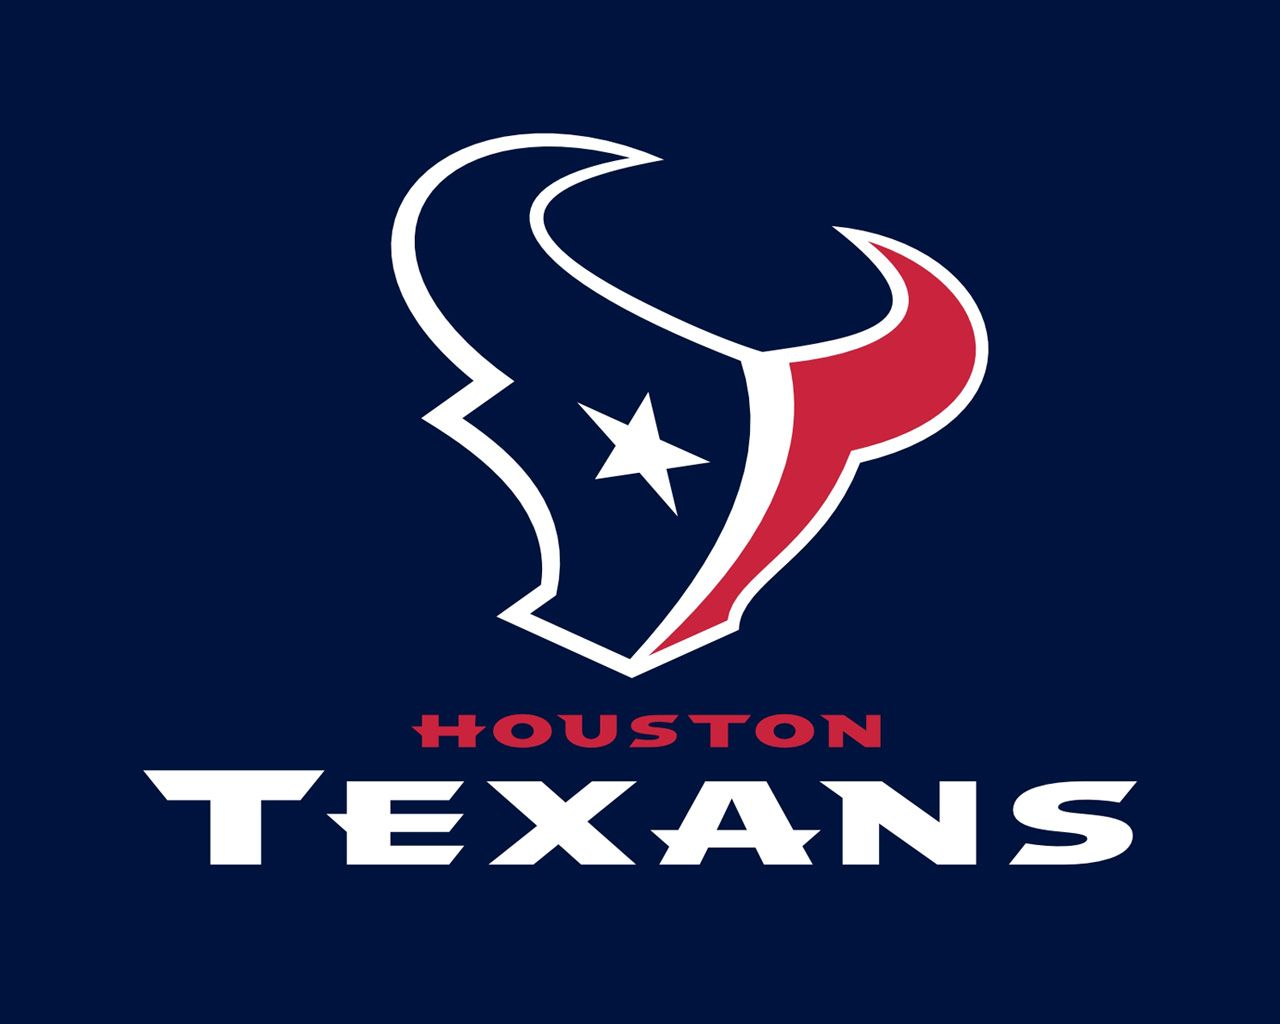 Houston Texans Wallpaper HD Wallpaper Texans football Houston 1280x1024